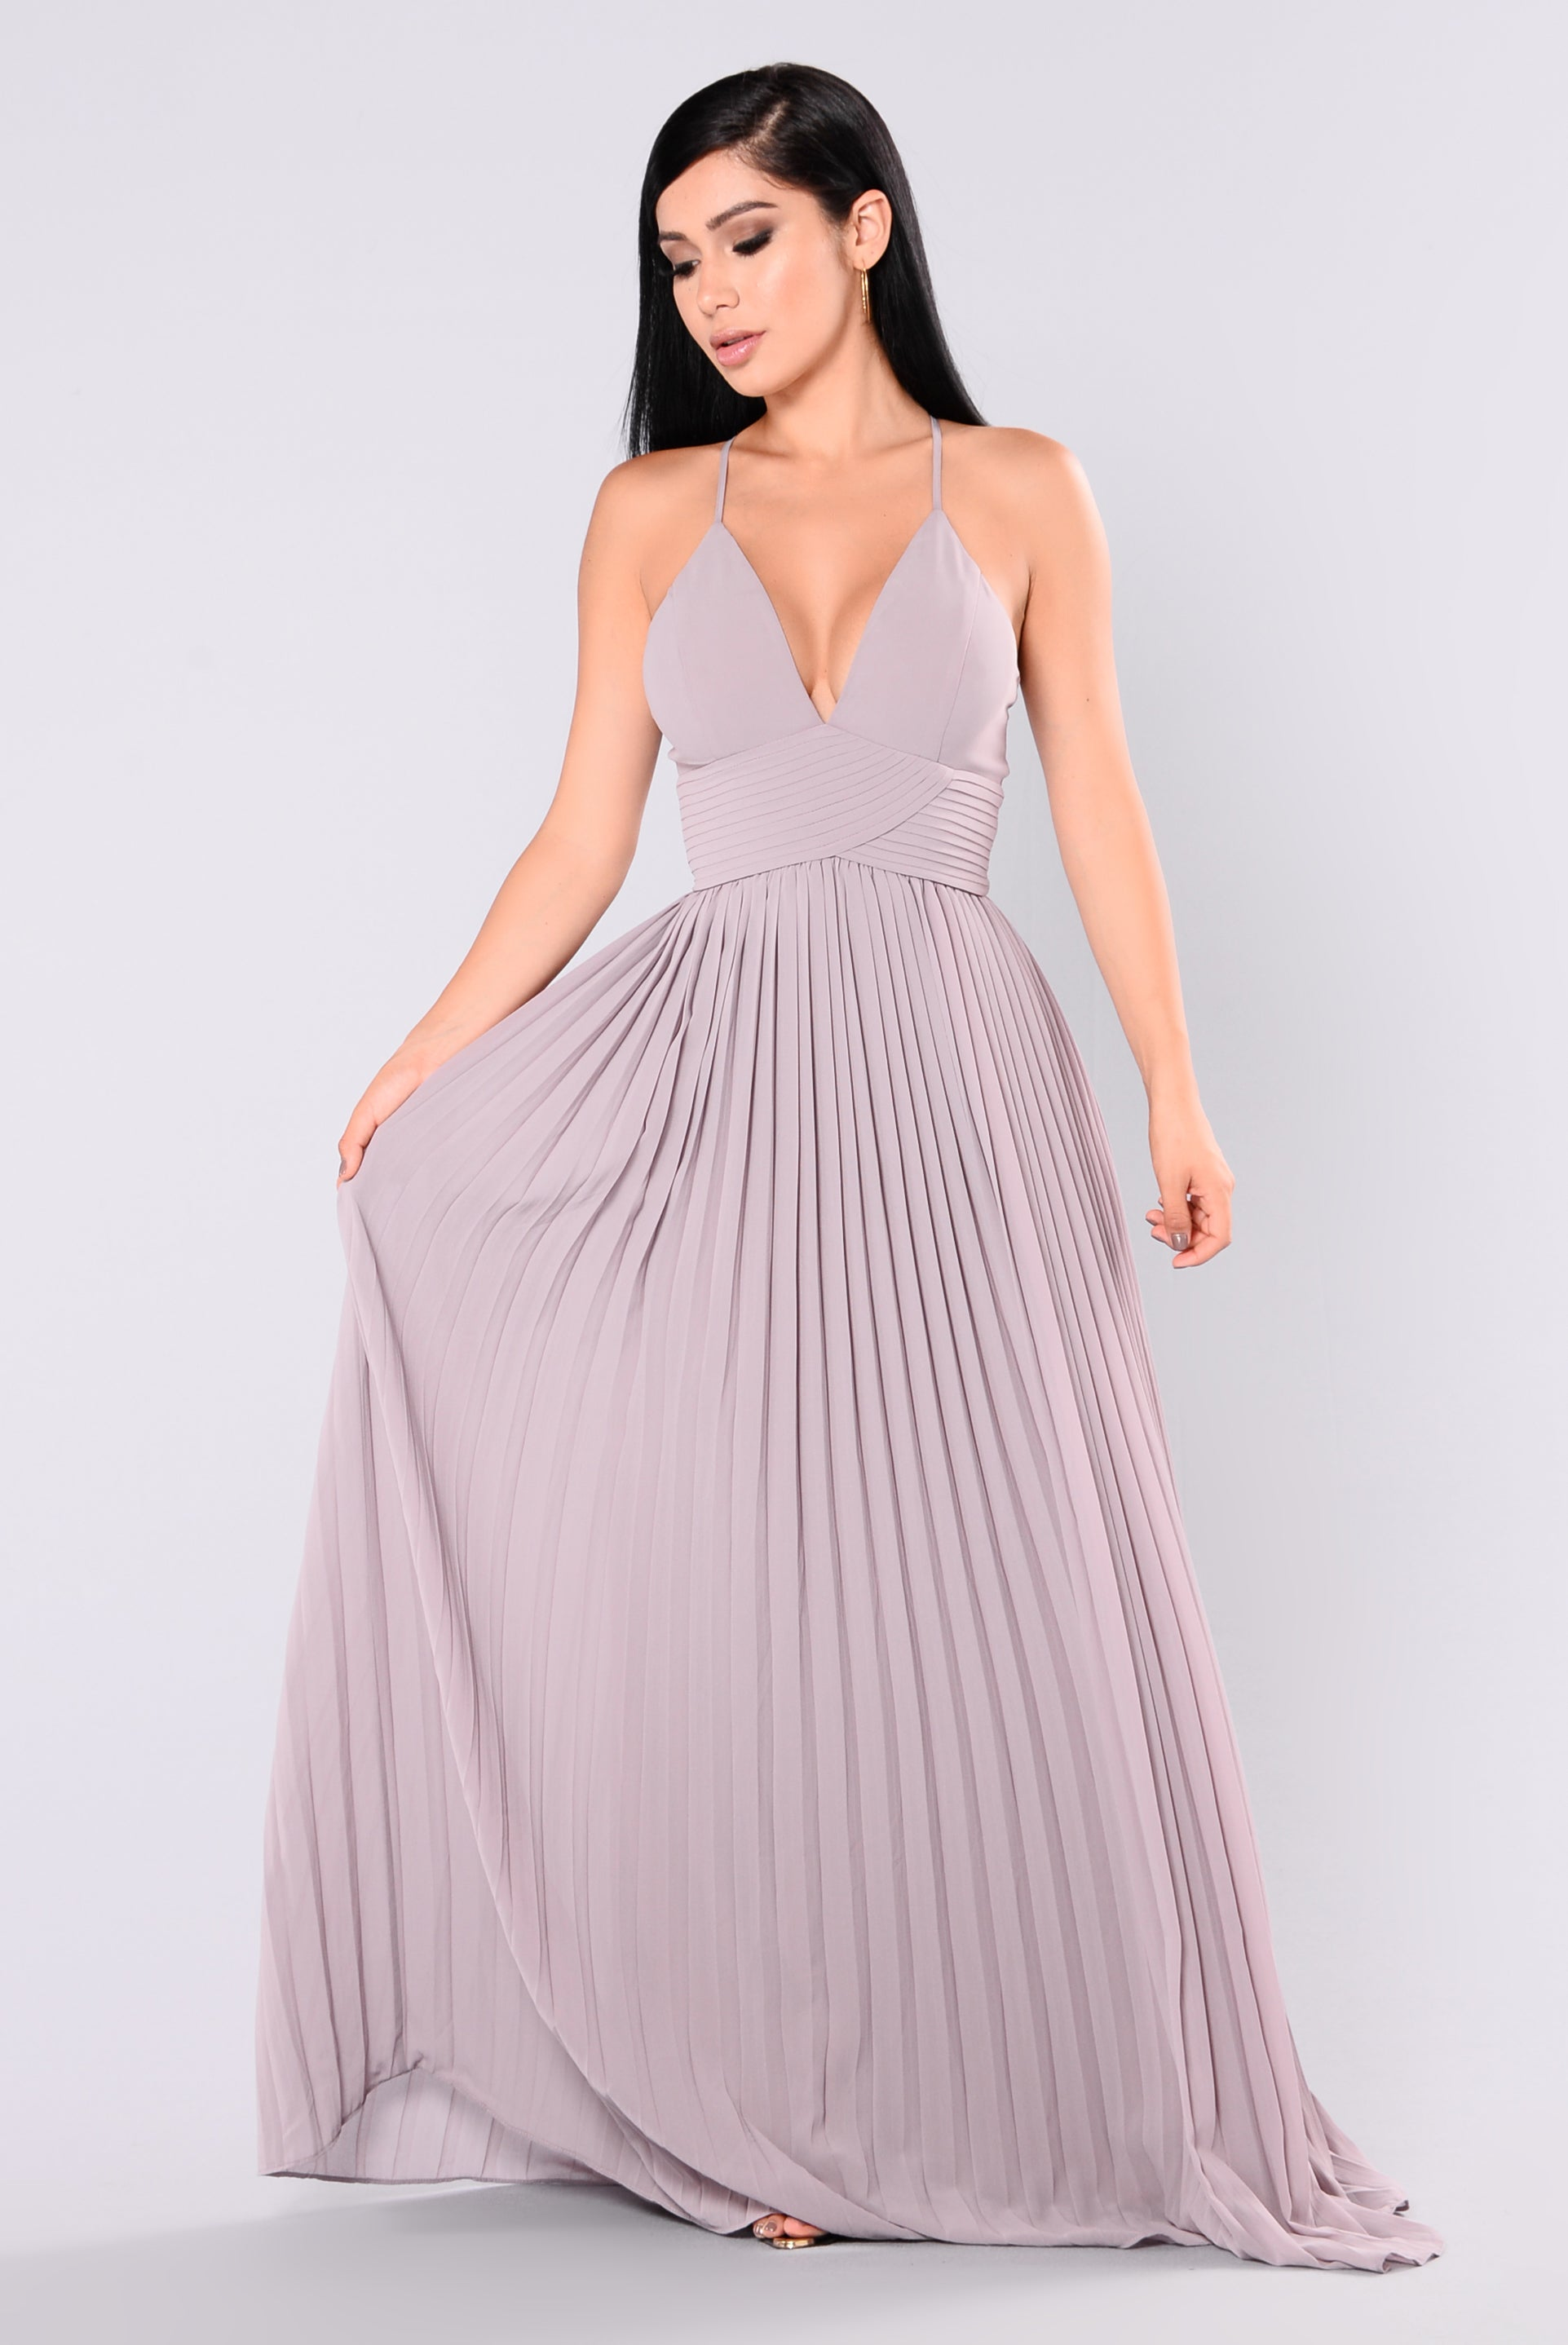 Lure Maxi Dress - Taupe